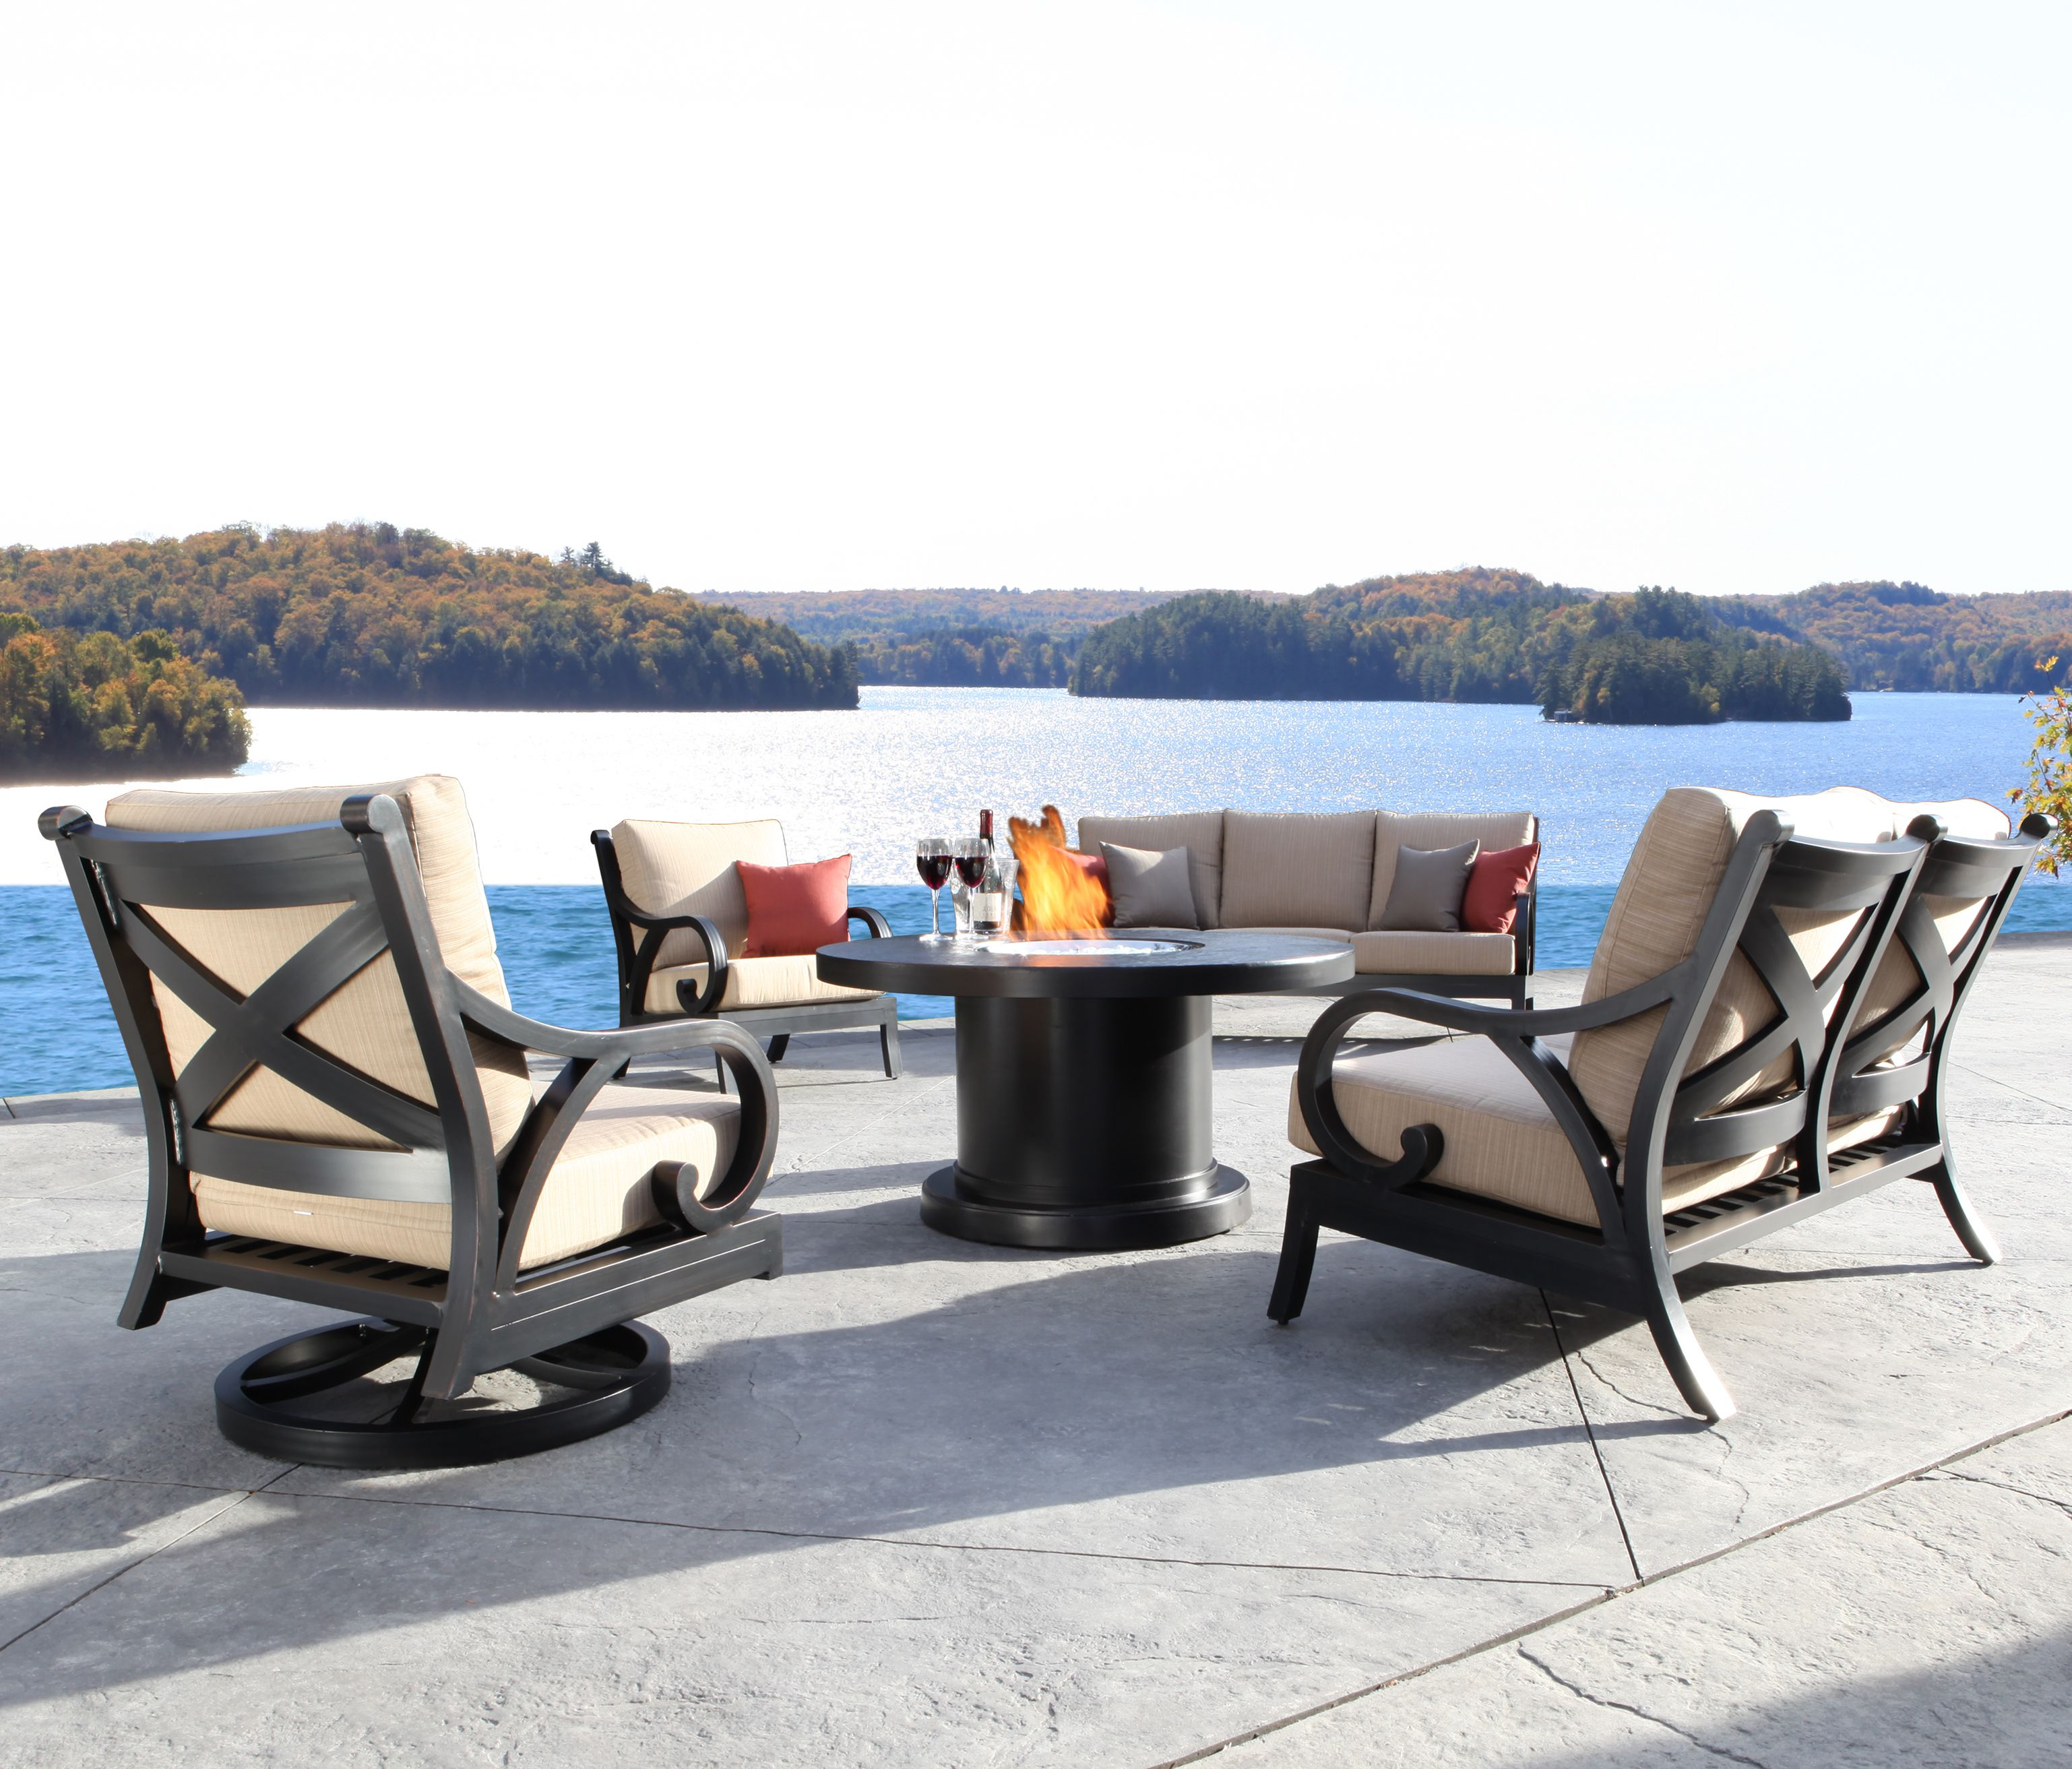 Milano Collection In Cast Aluminum Cabanacoast Patiofurniture Outdoorfurniture Patio Outdoors